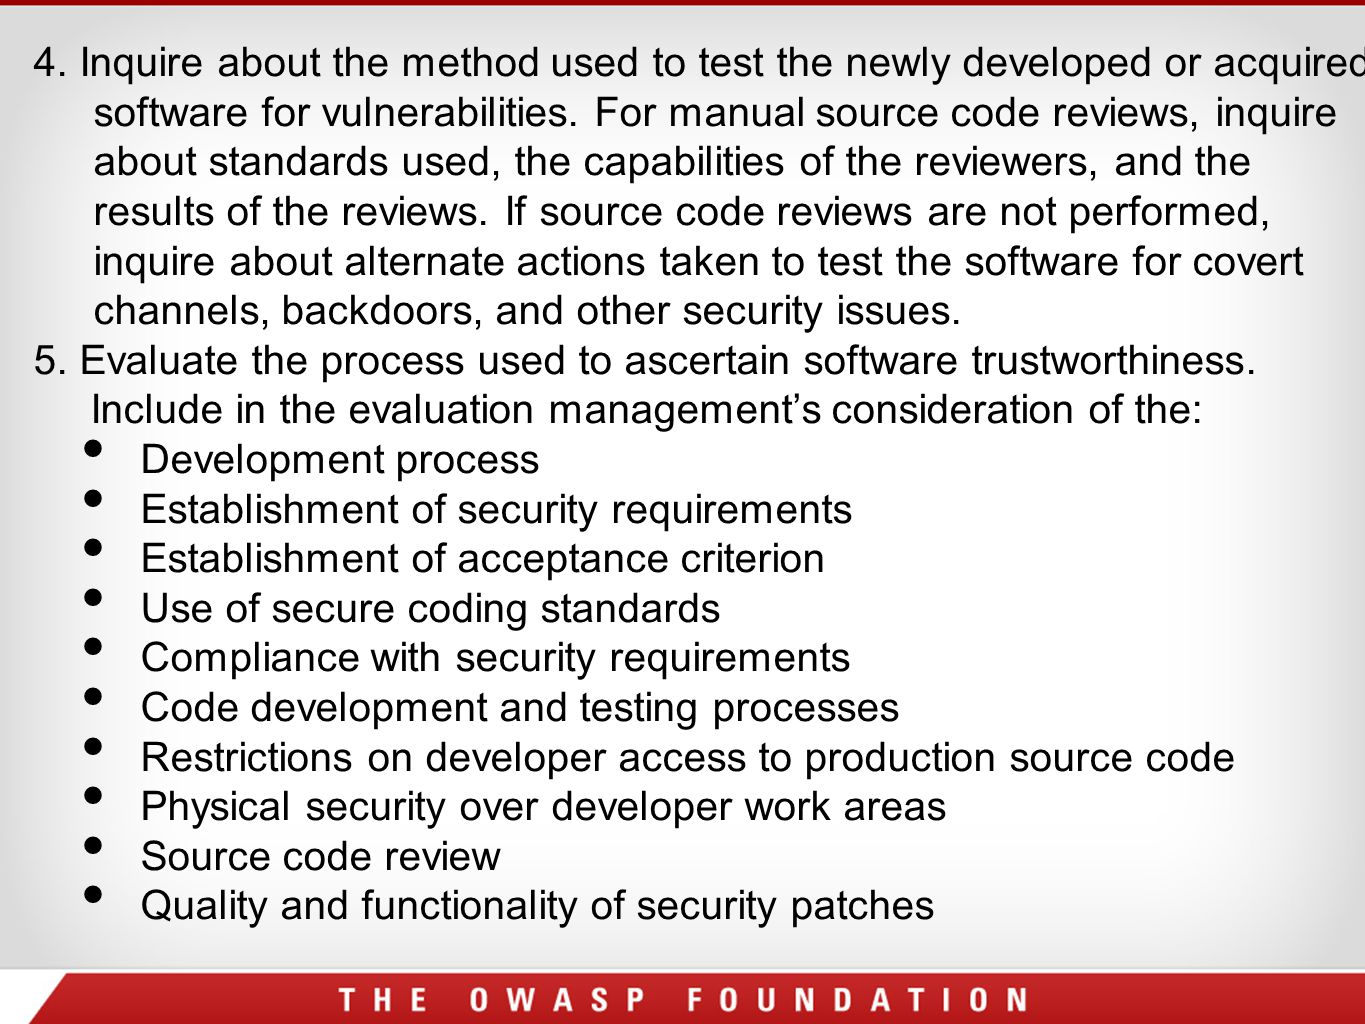 4. Inquire about the method used to test the newly developed or acquired software for vulnerabilities. For manual source code reviews, inquire about s